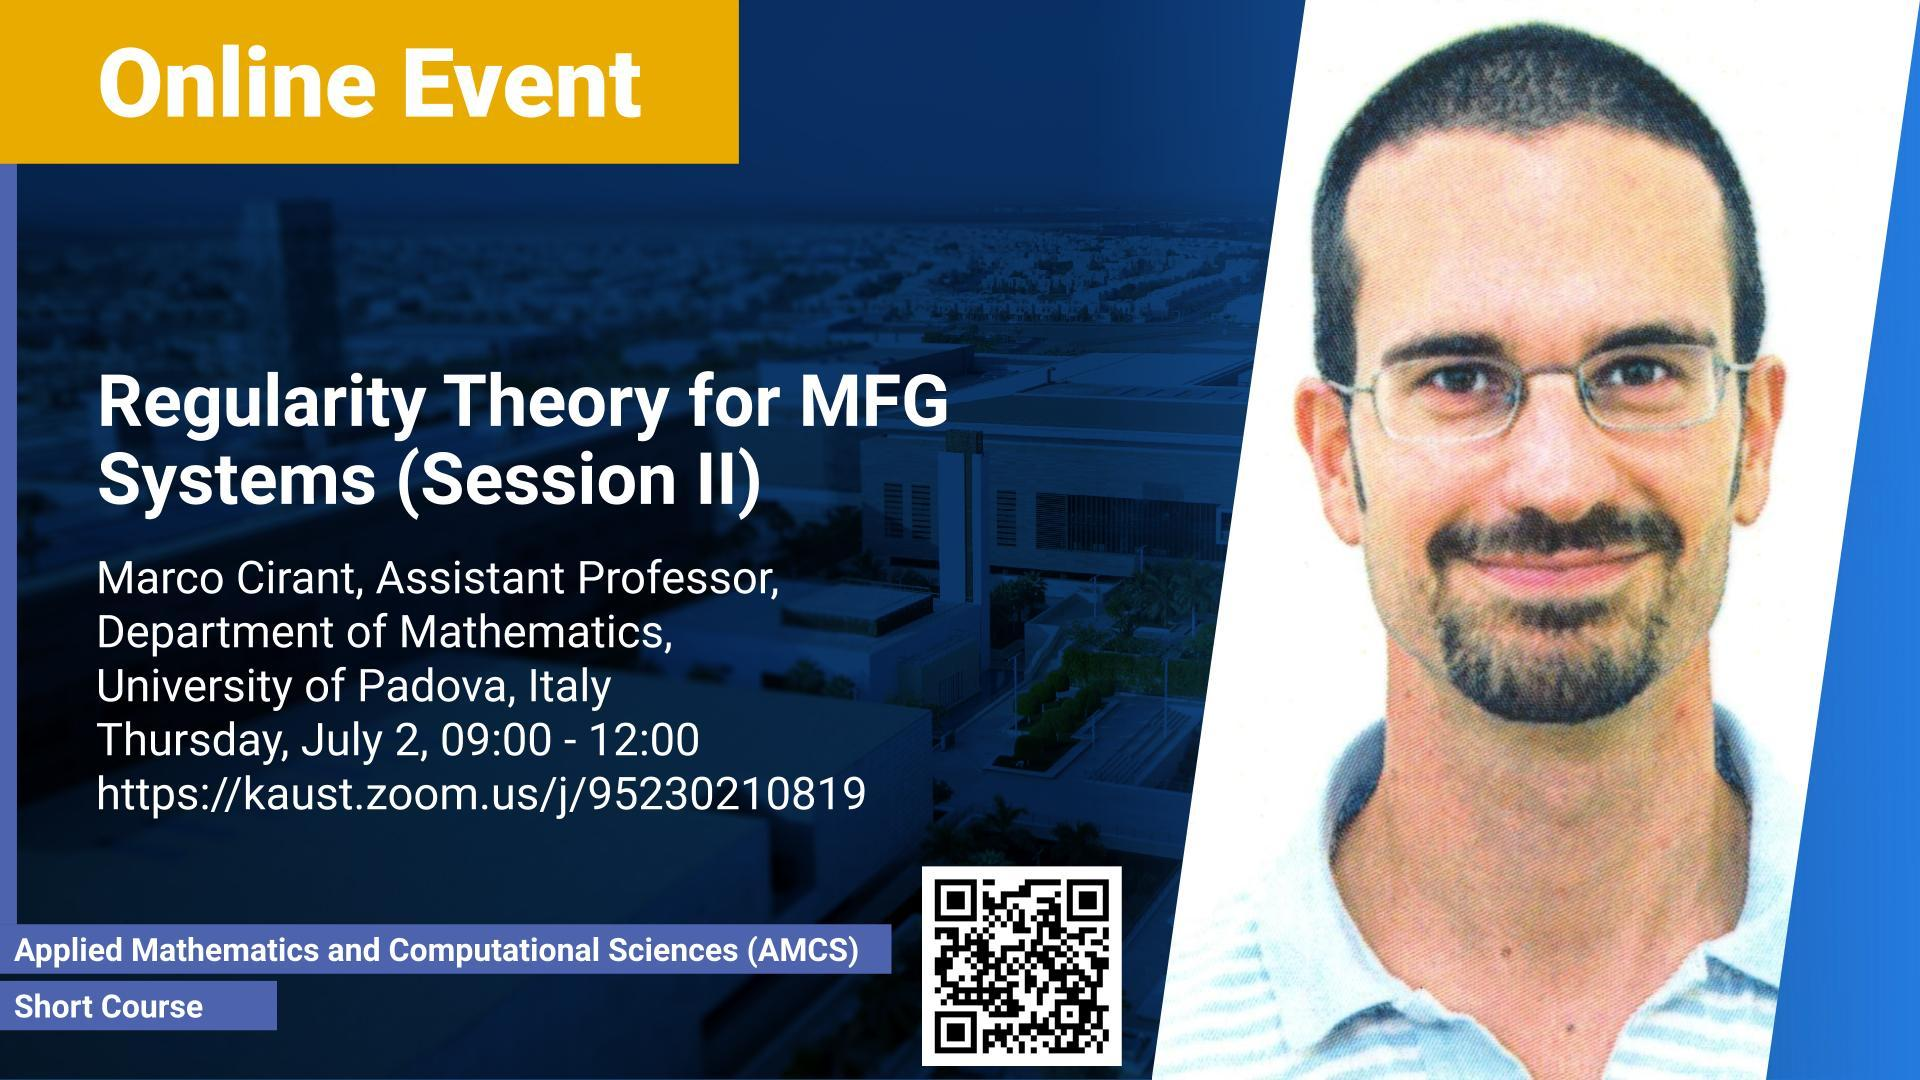 KAUST-CEMSE-AMCS-Short Course-Marco Cirant-Regularity Theory for MFG Systems (Session II)